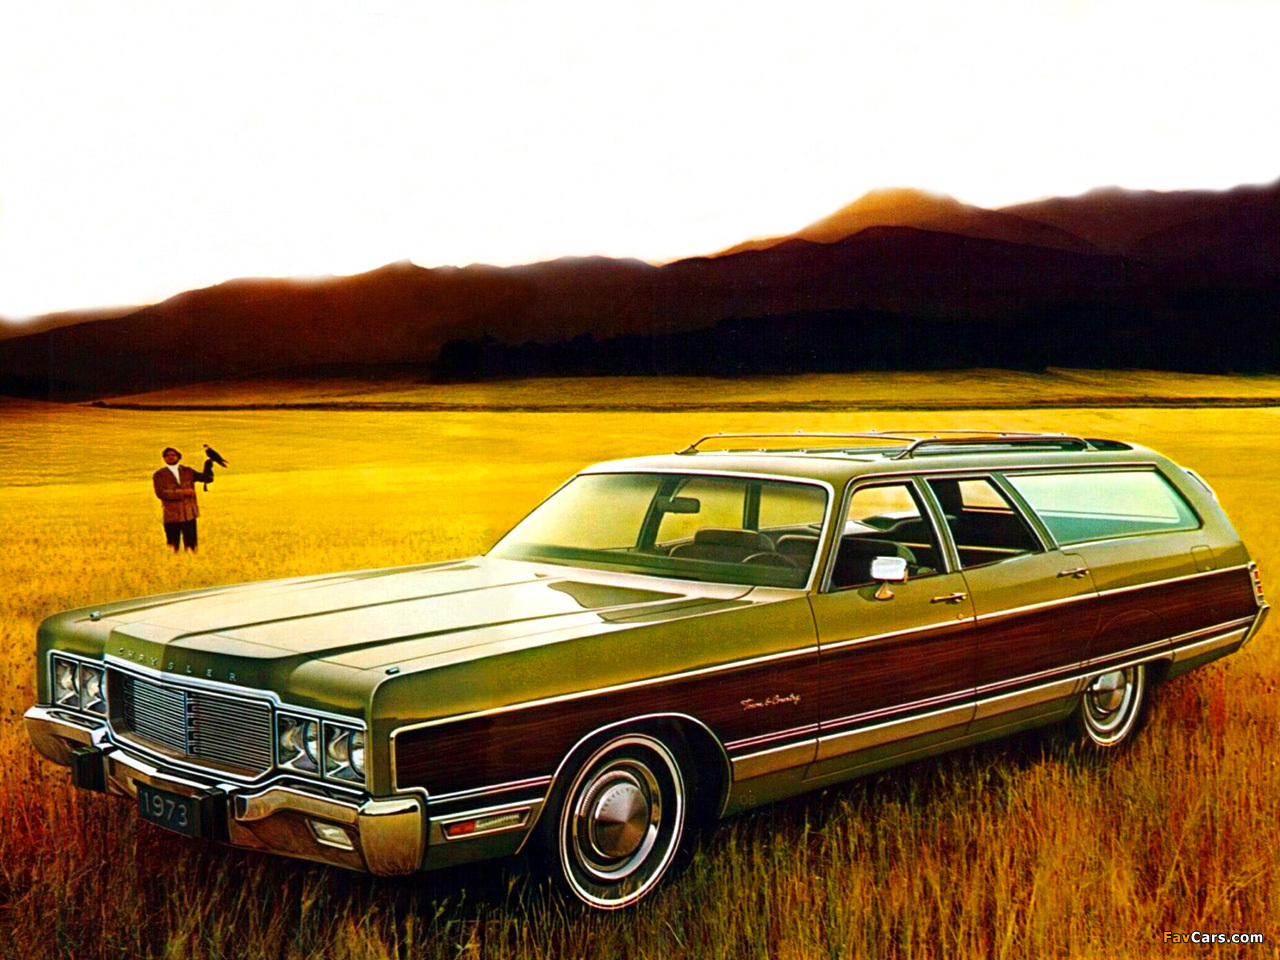 Town And Country Chrysler >> Chrysler Town & Country Station Wagon 1973 wallpapers (1280x960)